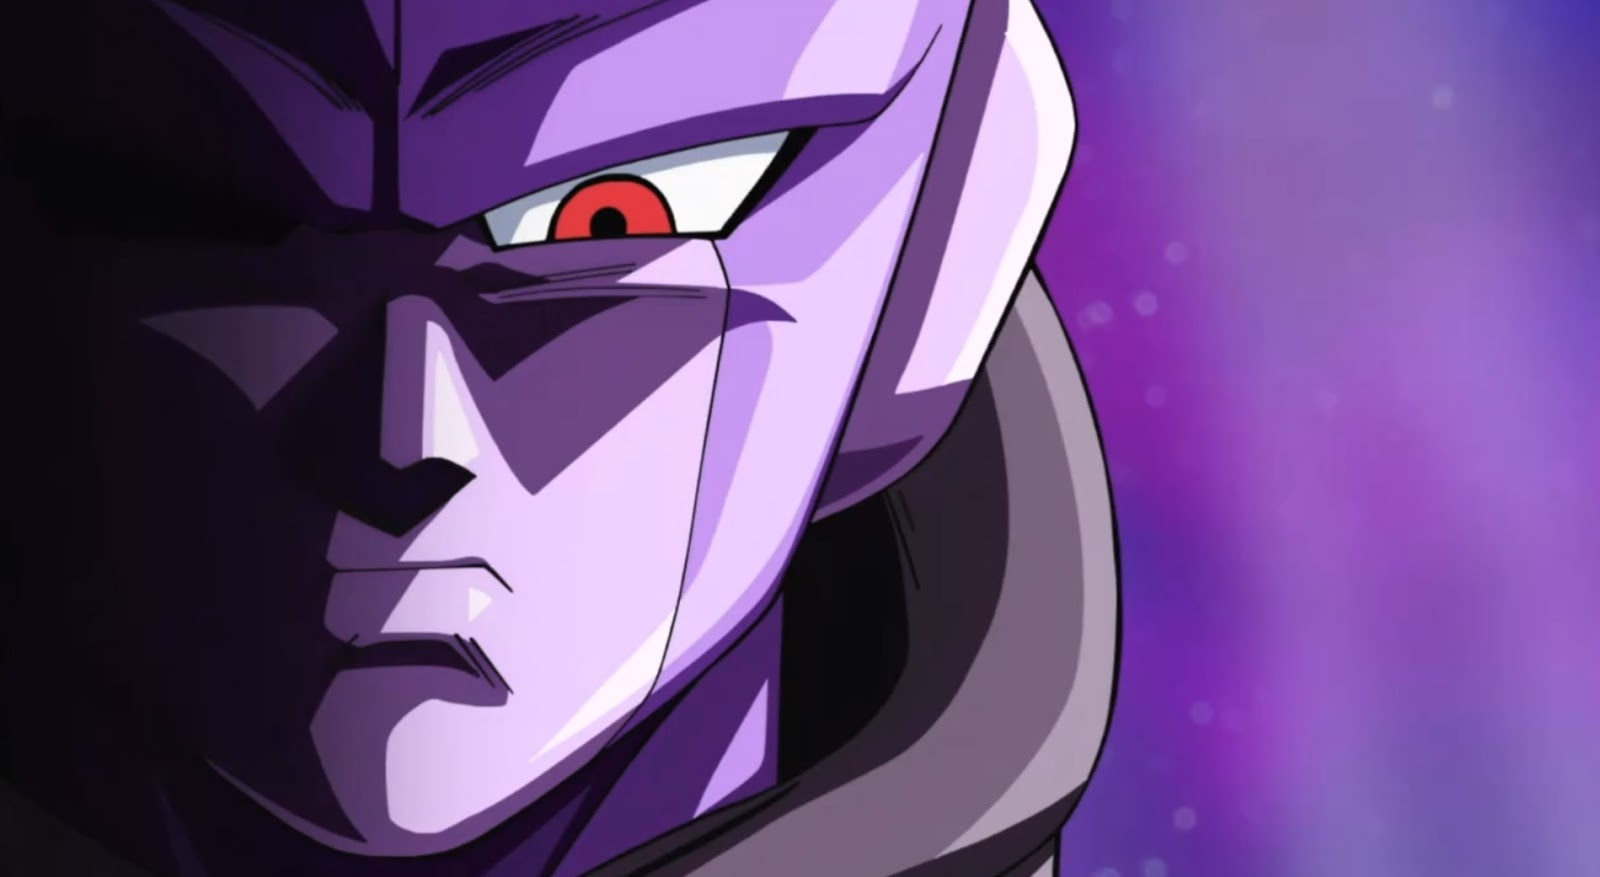 Dragon Ball Super Dublado Episódio 39, Assistir Dragon Ball Super Dublado Episódio 39, Dragon Ball Super Dublado , Dragon Ball Super Dublado - Episódio 39,